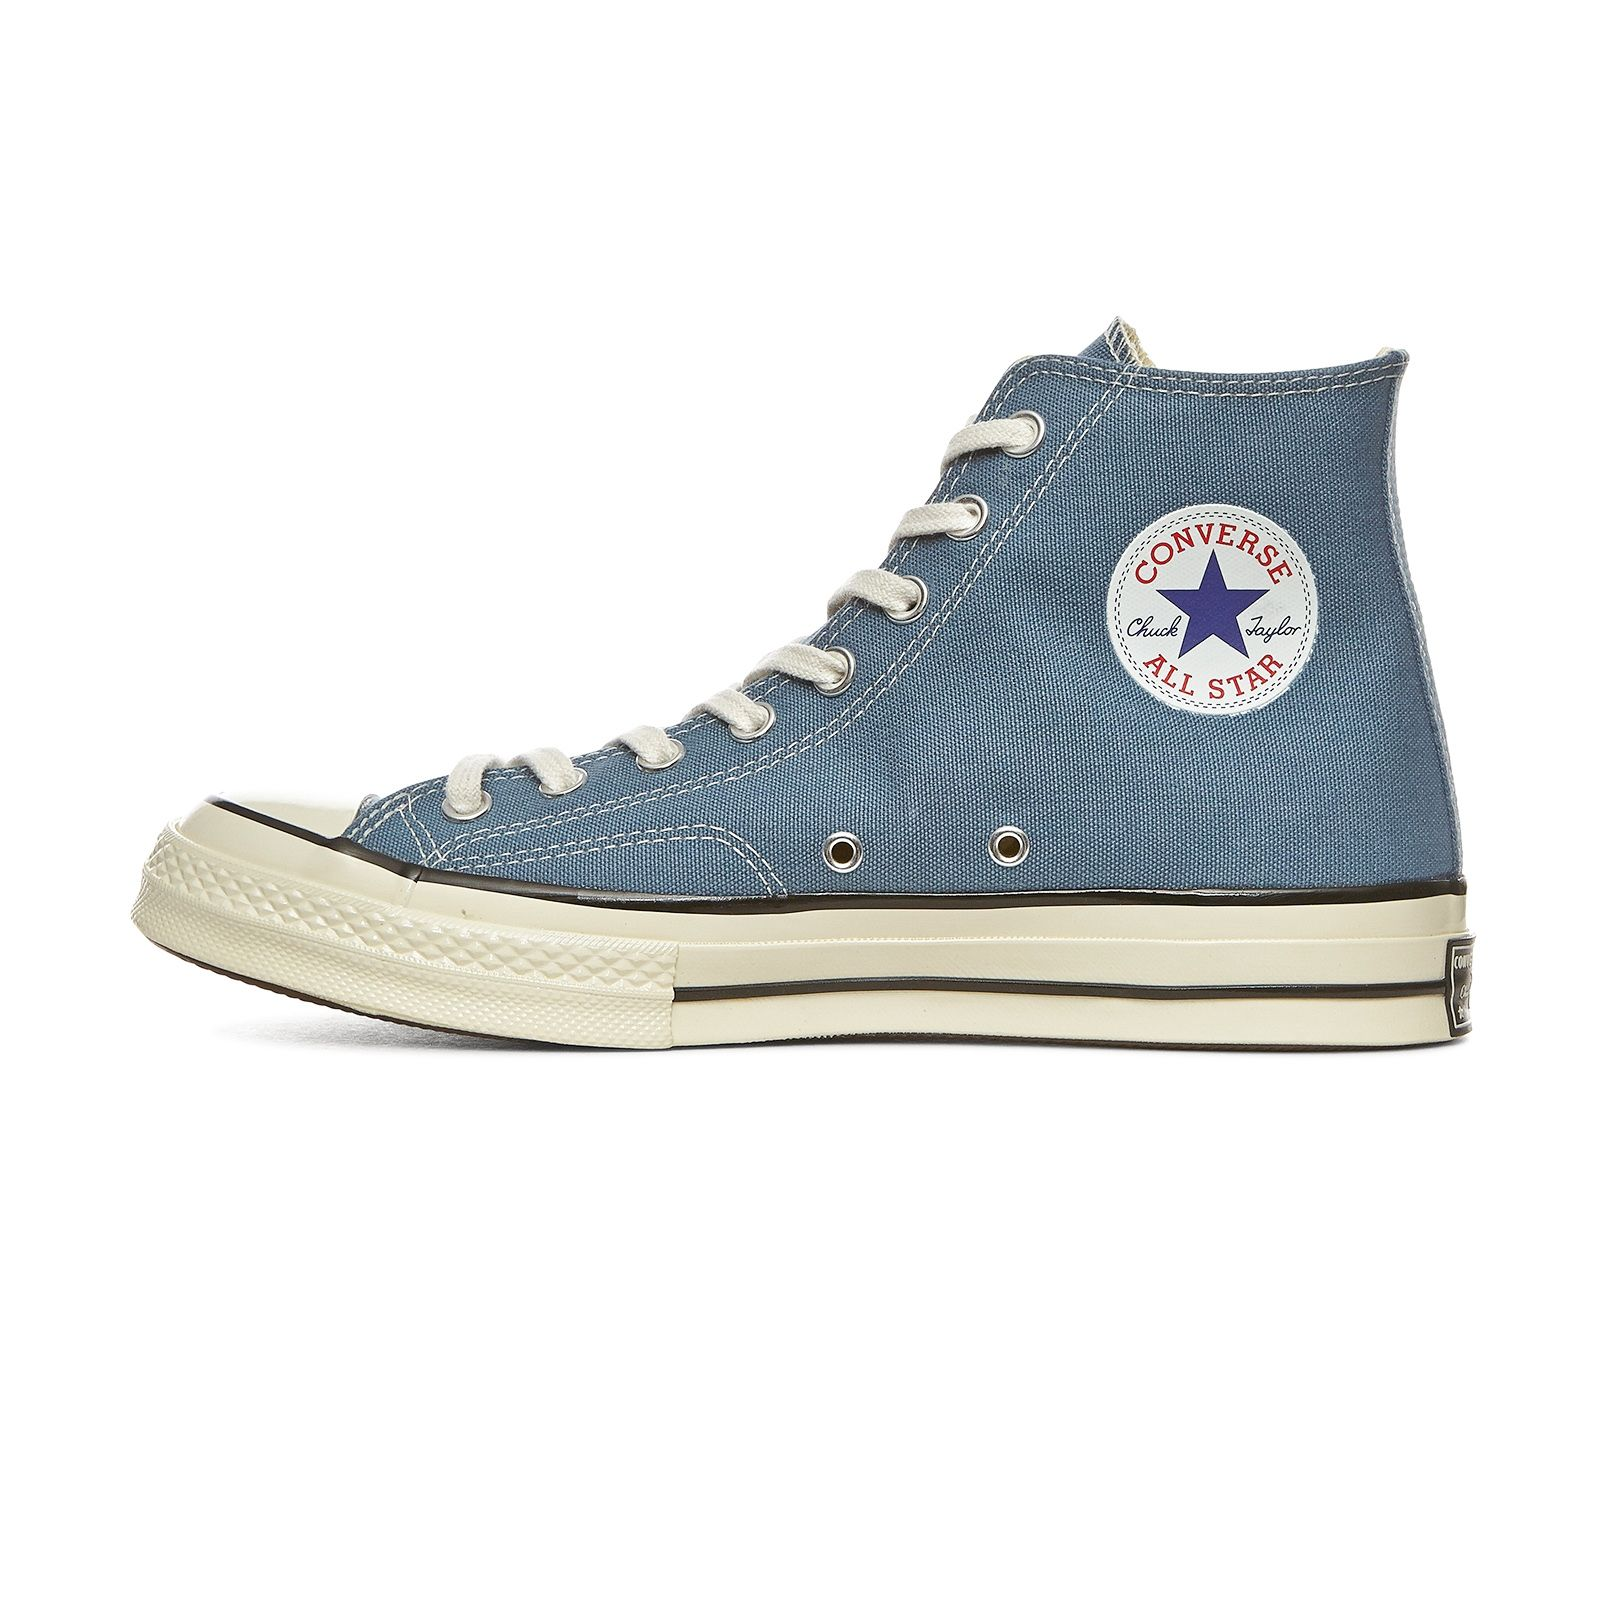 Converse Chuck Taylor High 70s Vintage Canvas Sneakers